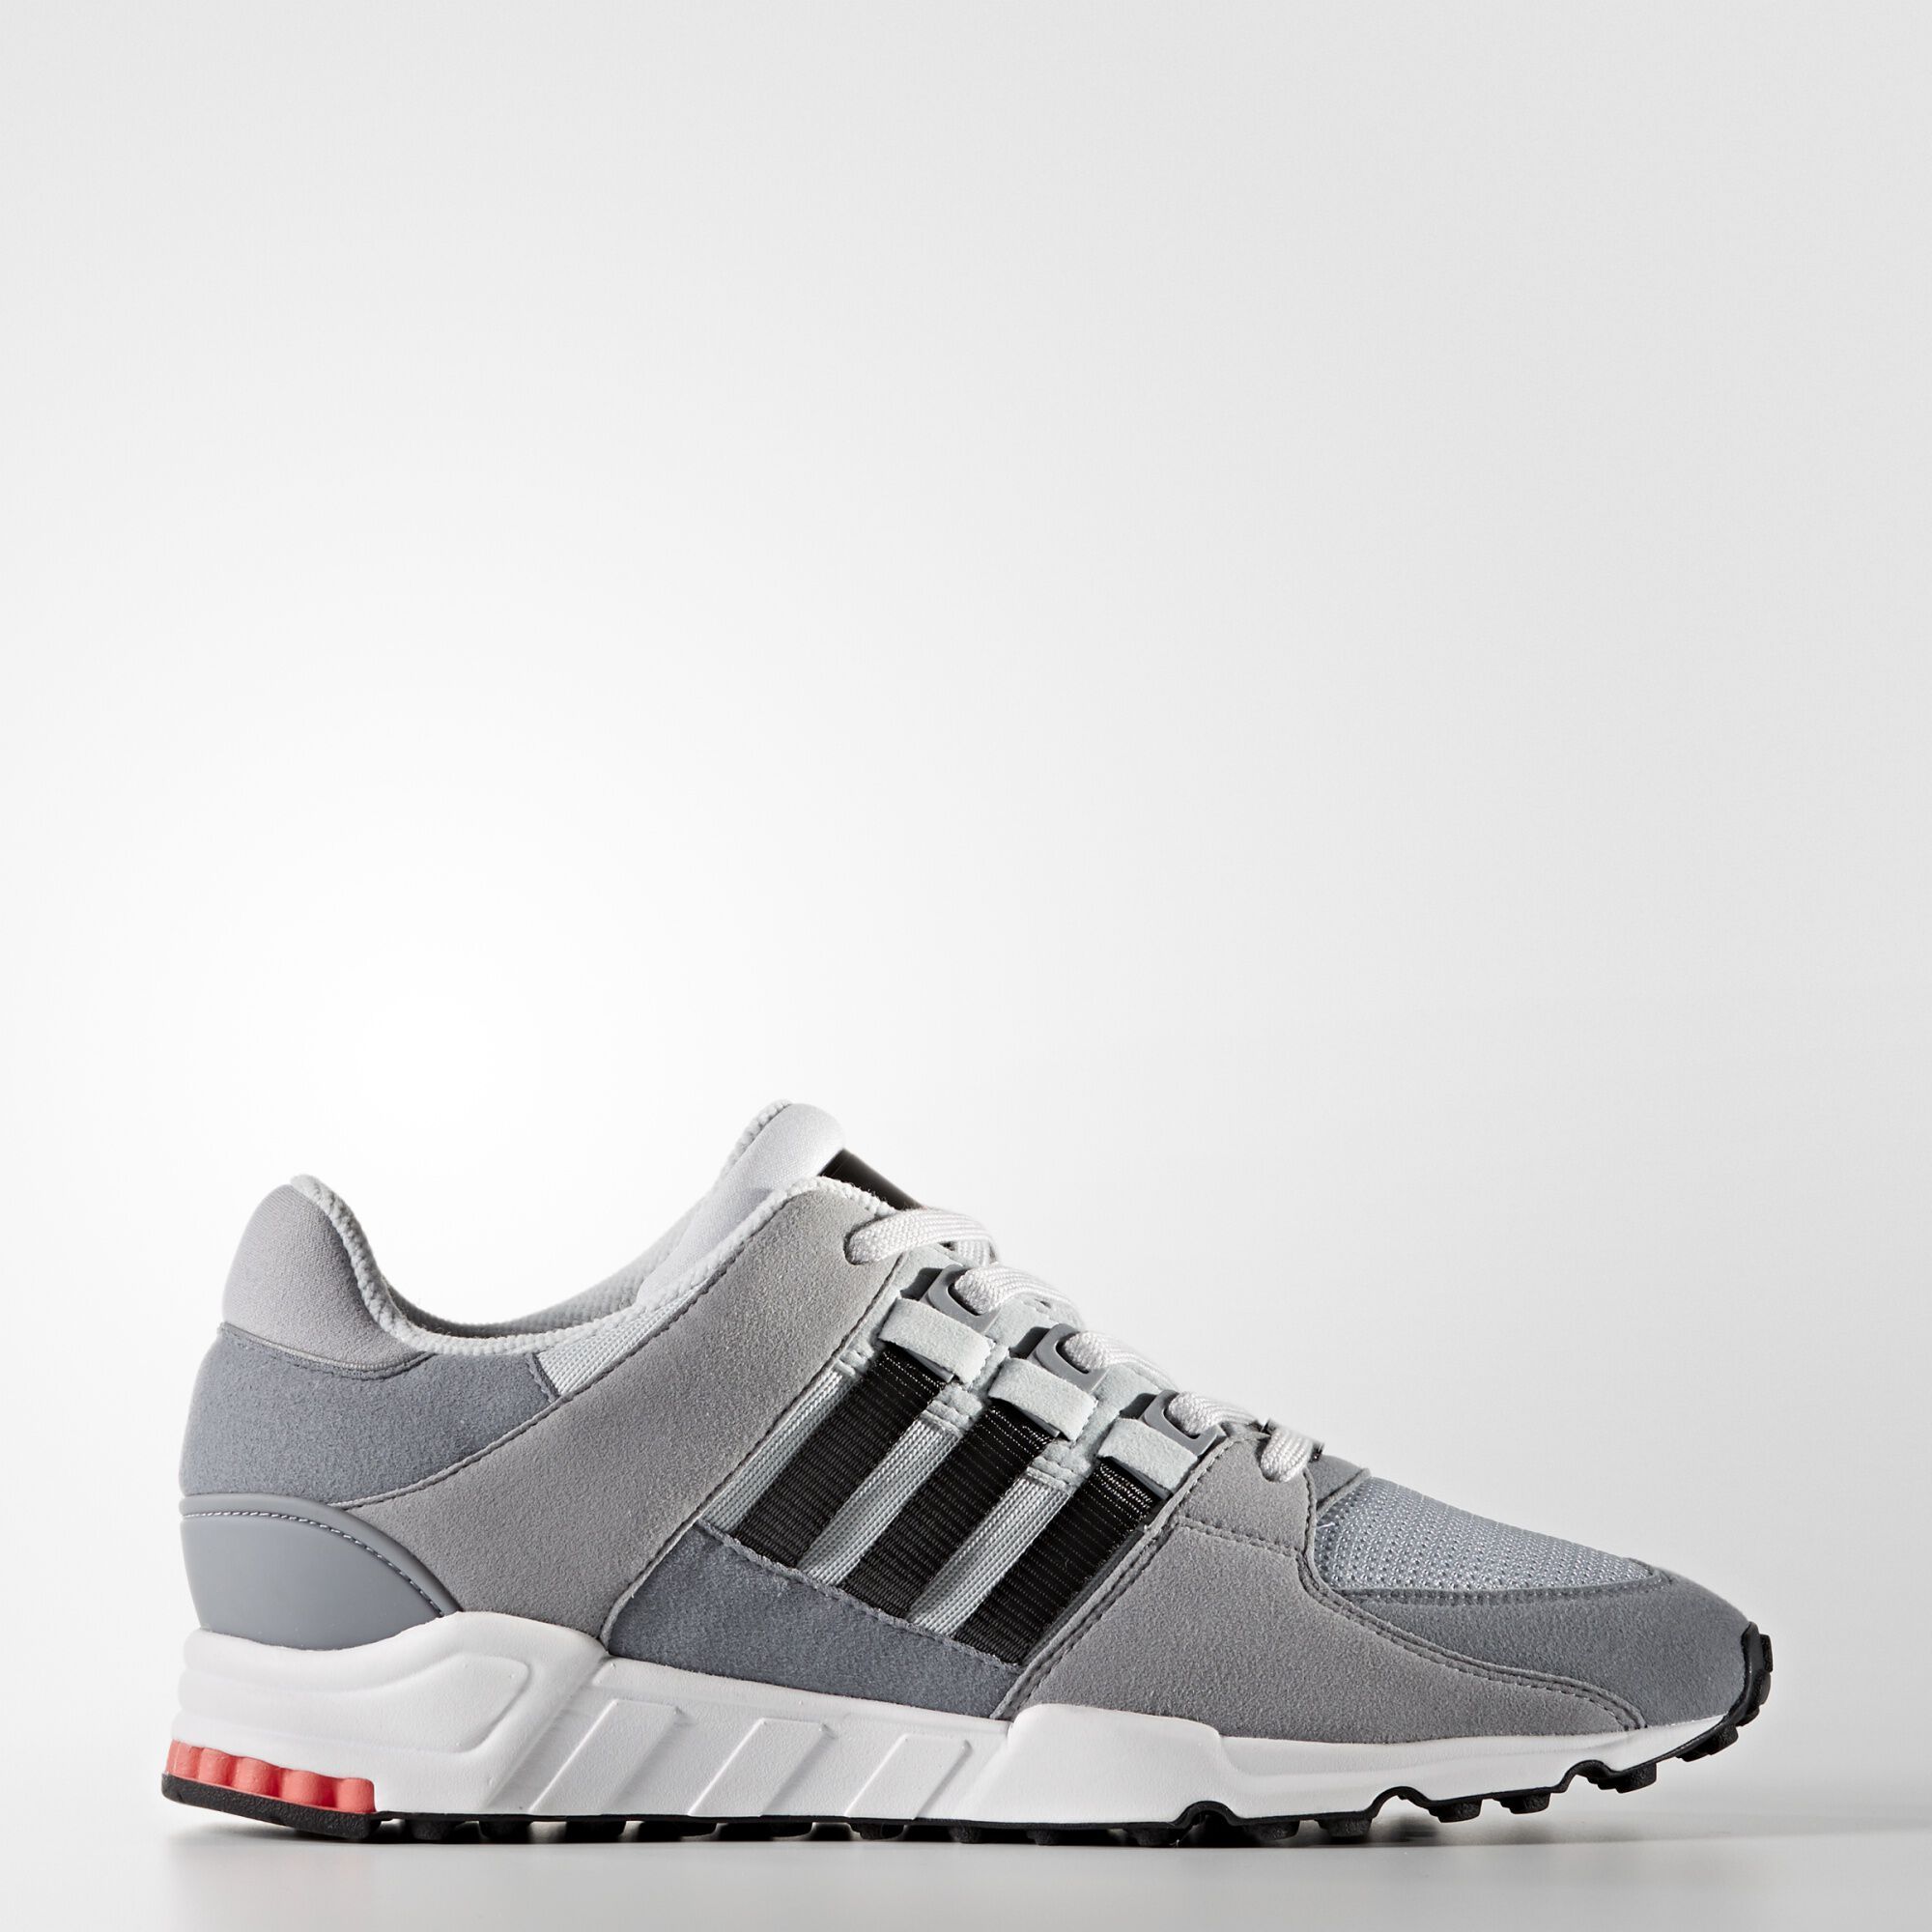 Concepts x adidas EQT Support 93/16 Black/White Kicks Deals